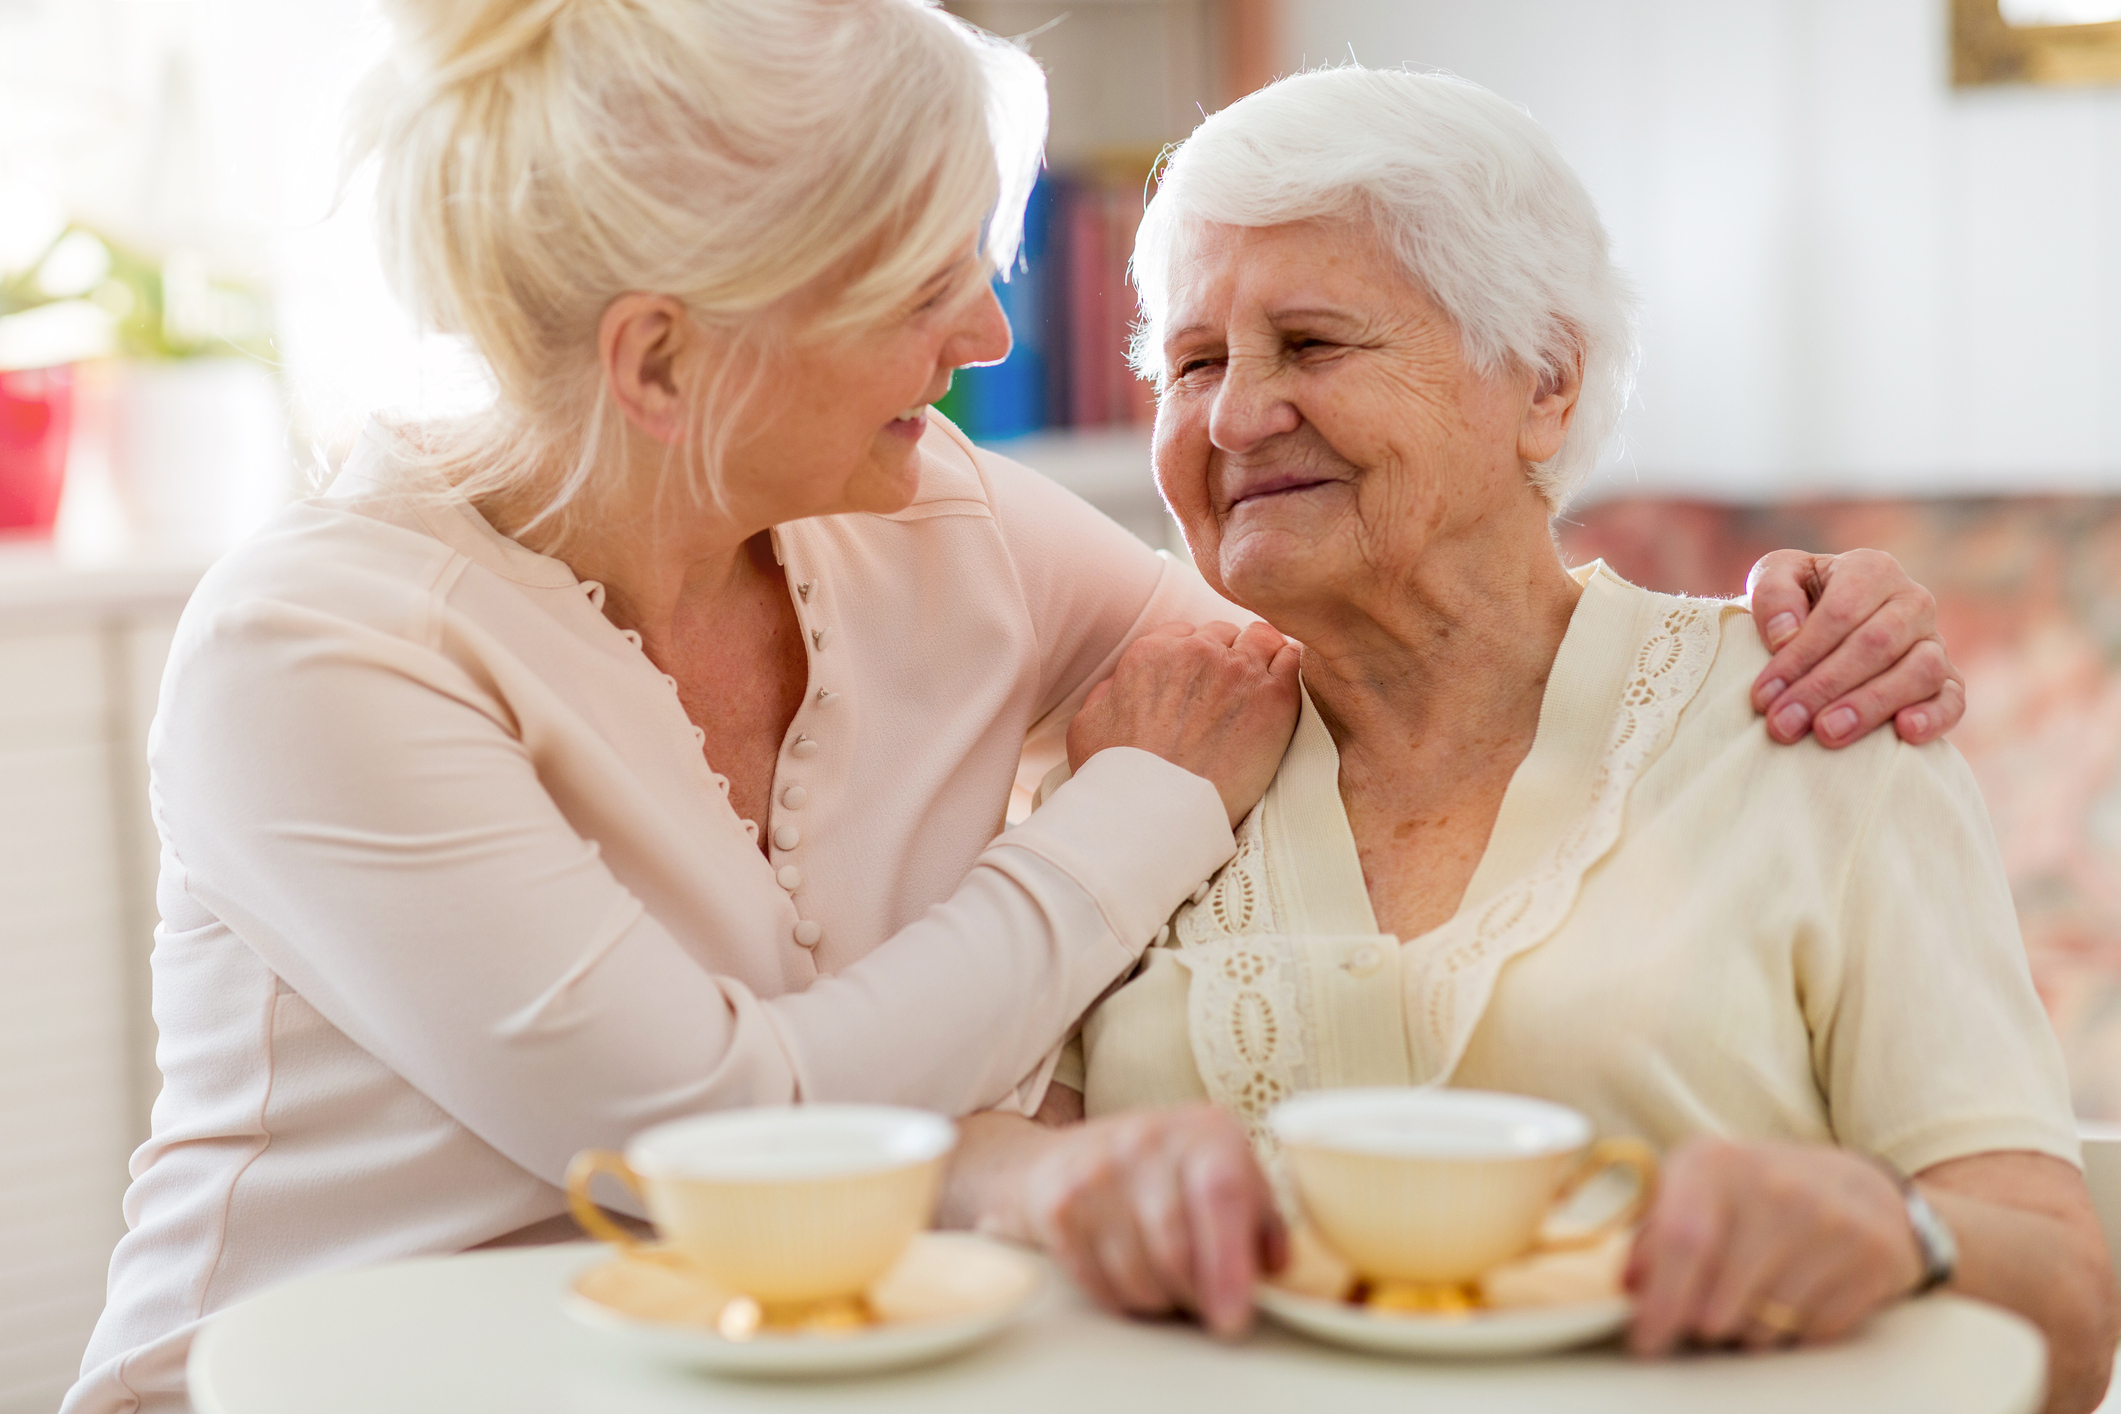 middle-aged woman holding her elderly mother and smiling while sitting at a kitchen table